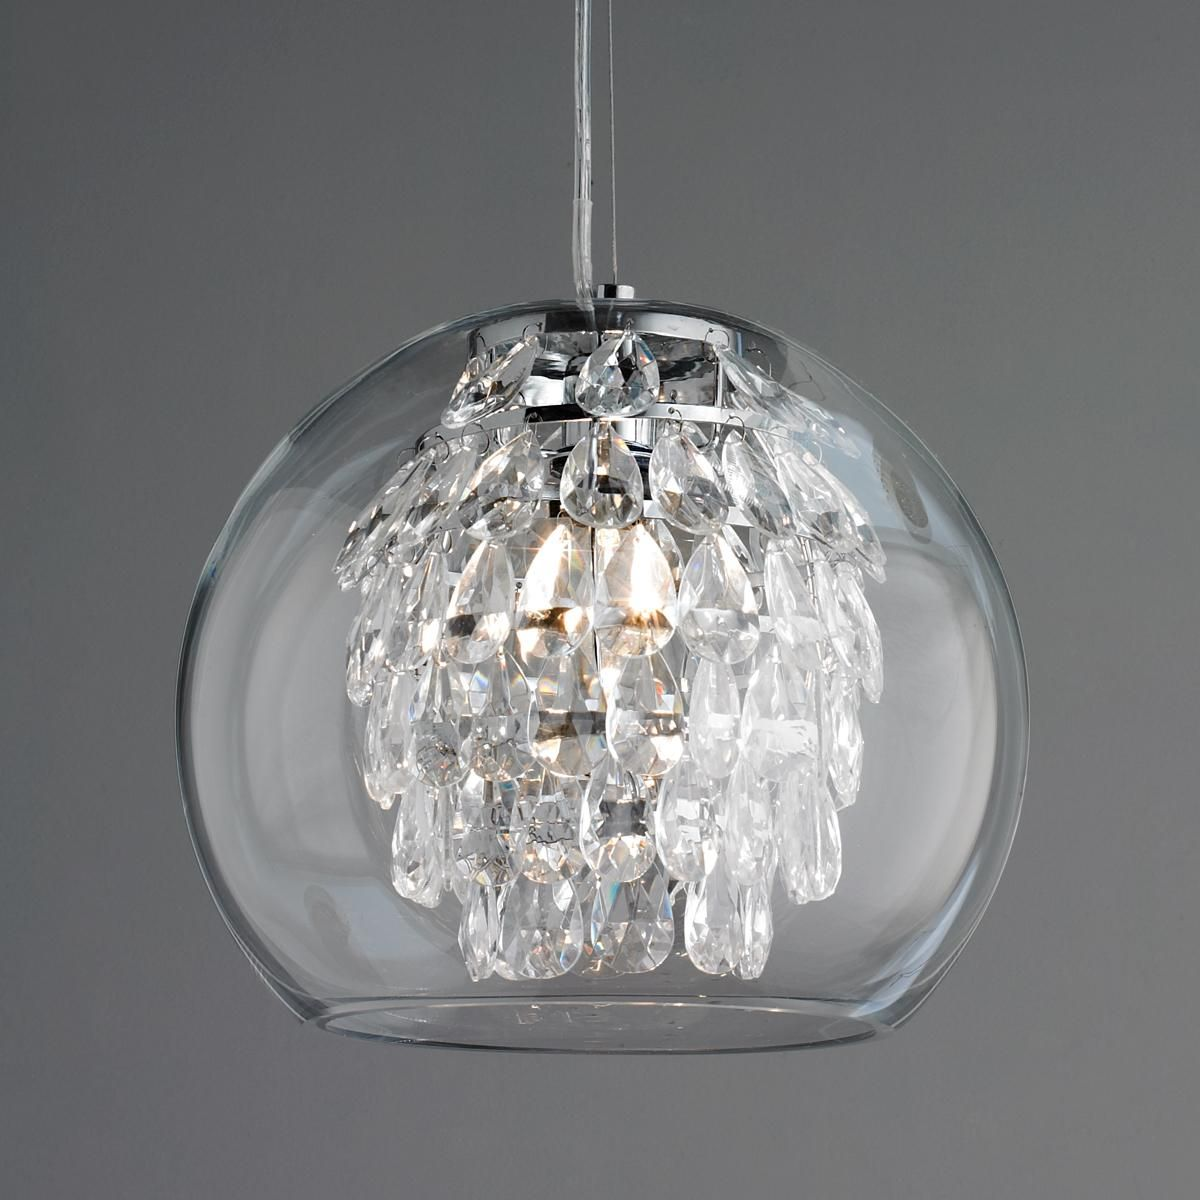 Light Pendants Glass Globe And Crystal Pendant Light Crystal Pendant